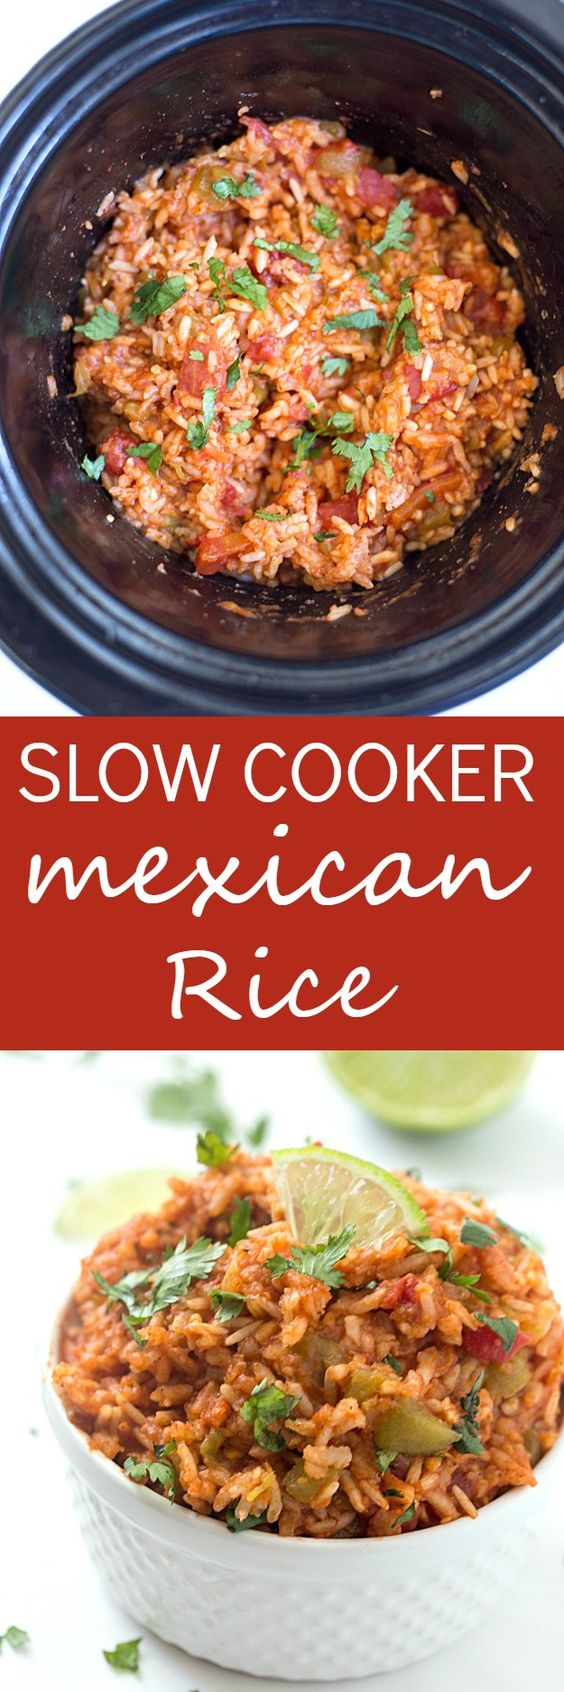 Slow Cooker Mexican Rice | Stay At Home Mum